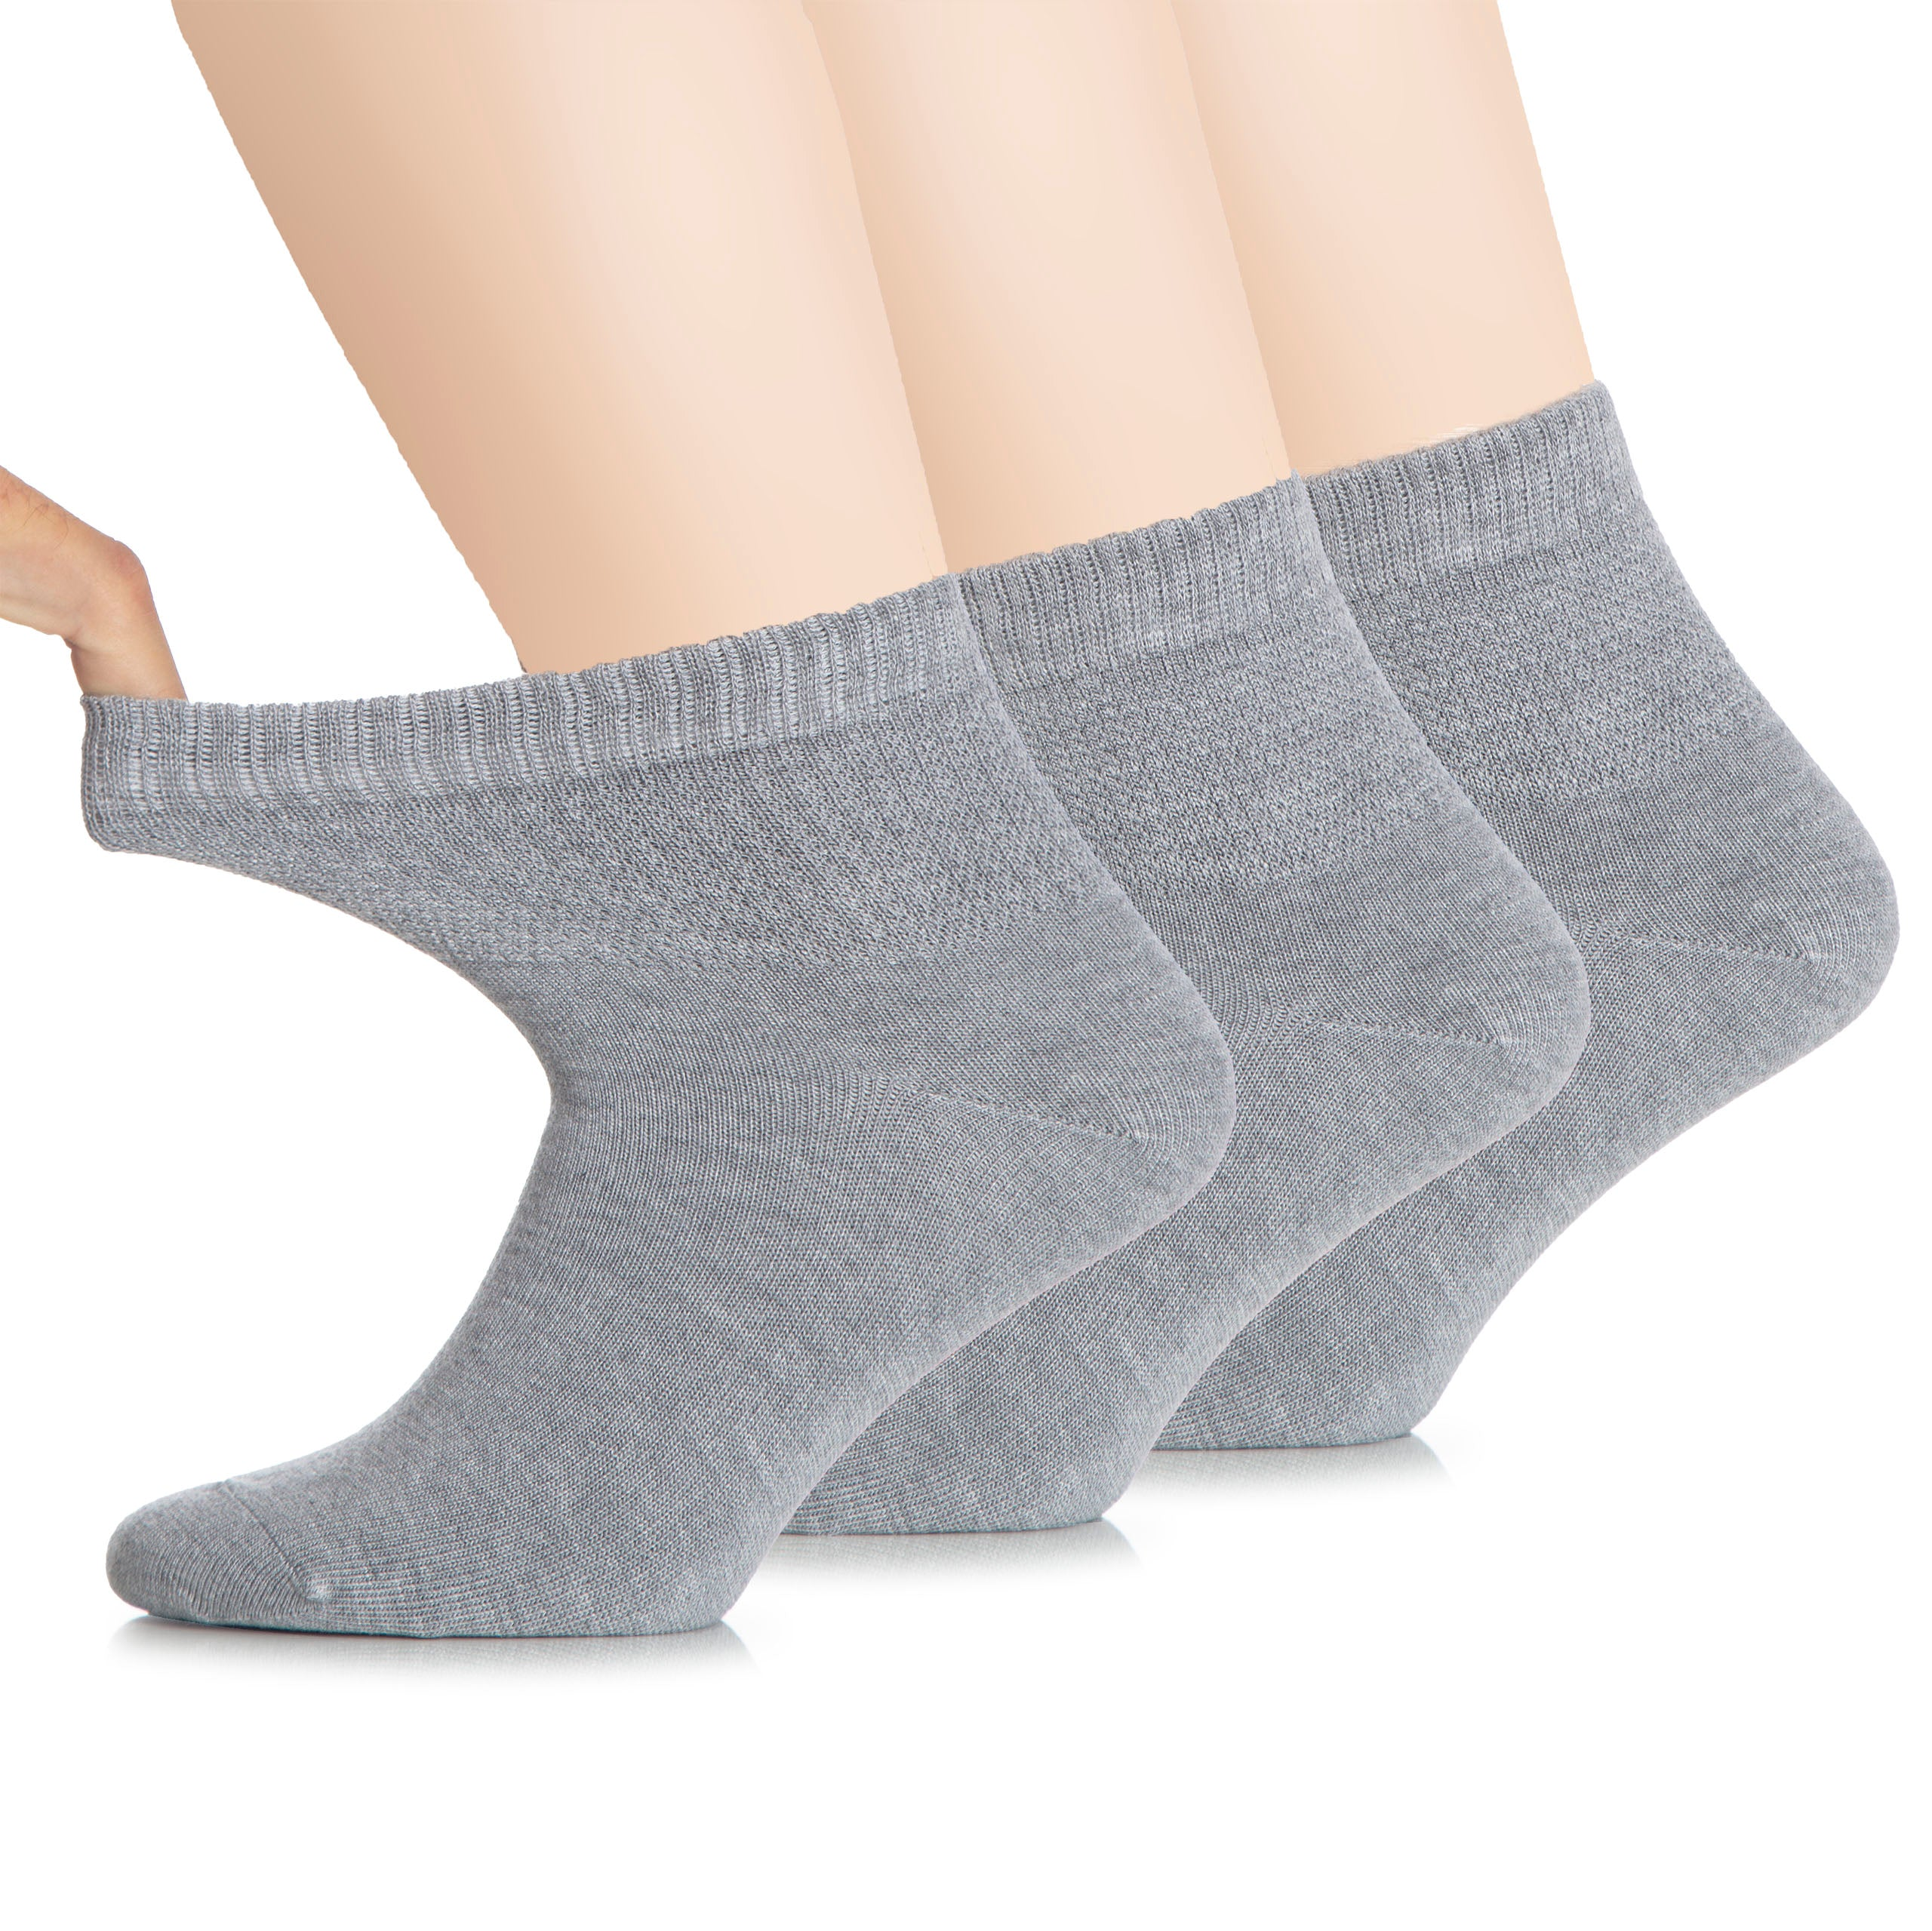 Hugh Ugoli Women's Bamboo Ankle Socks Soft Warm For Swollen Legs Seamless Toe and Non-Binding Top, 3 Pairs